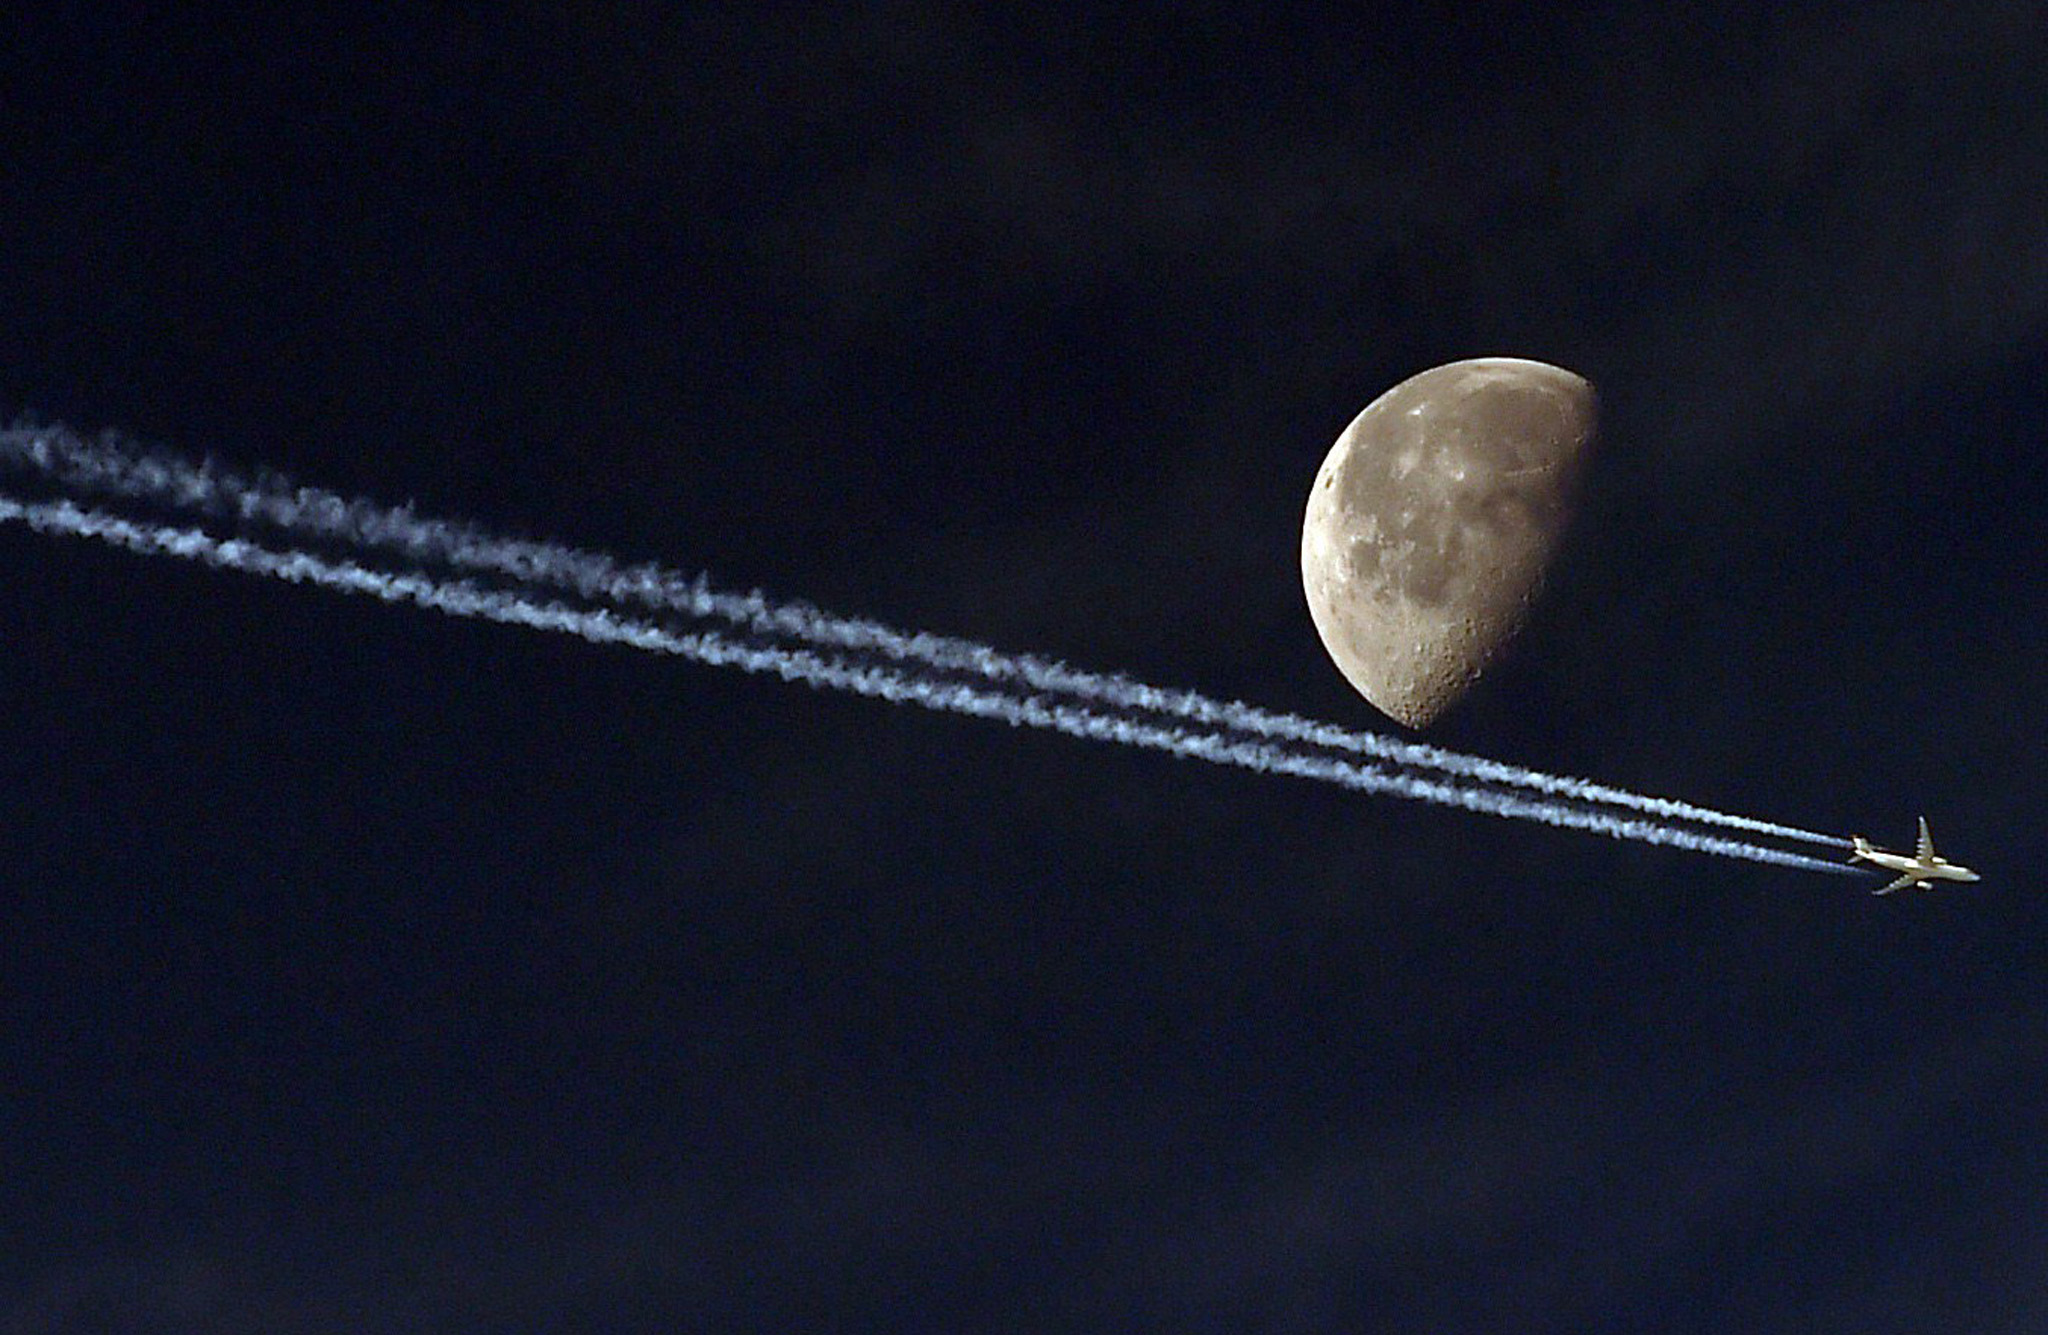 TOPSHOTS A jetliner leave a vapour trail...TOPSHOTS A jetliner leave a vapour trail as it passes in front of the moon on May 20, 2014, taken from the Algerian capital Algiers. AFP PHOTO/FAROUK BATICHEFAROUK BATICHE/AFP/Getty Images